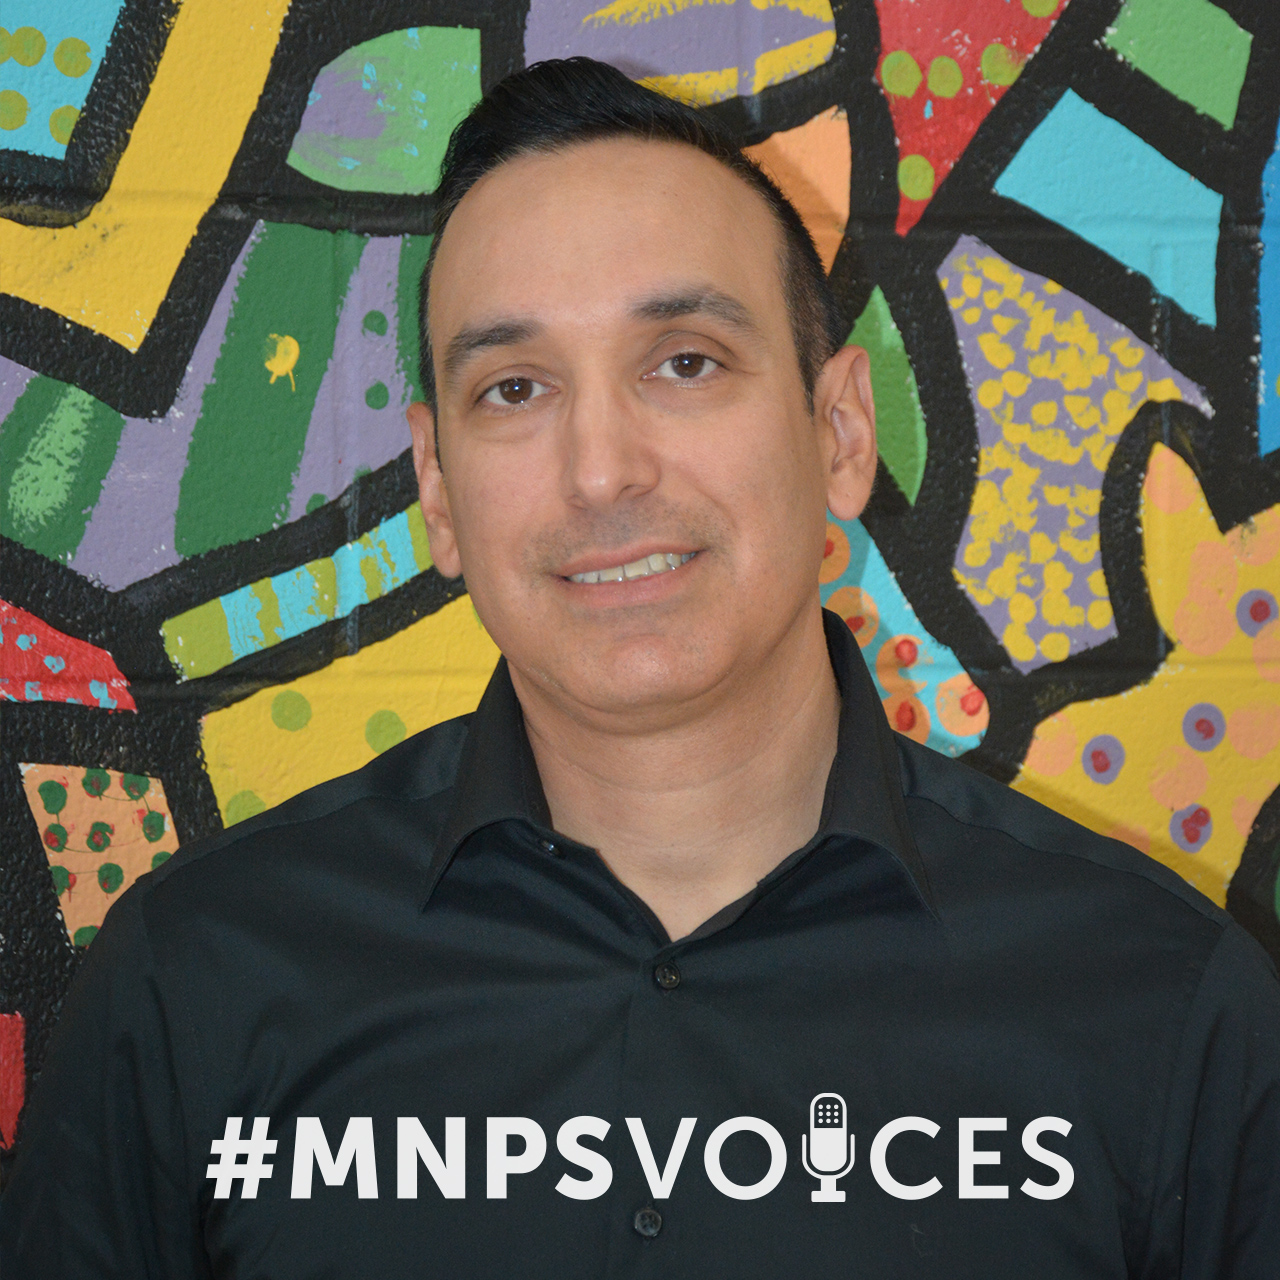 #MNPSVoices – Chris Echegaray, Community Achieves Site Manager